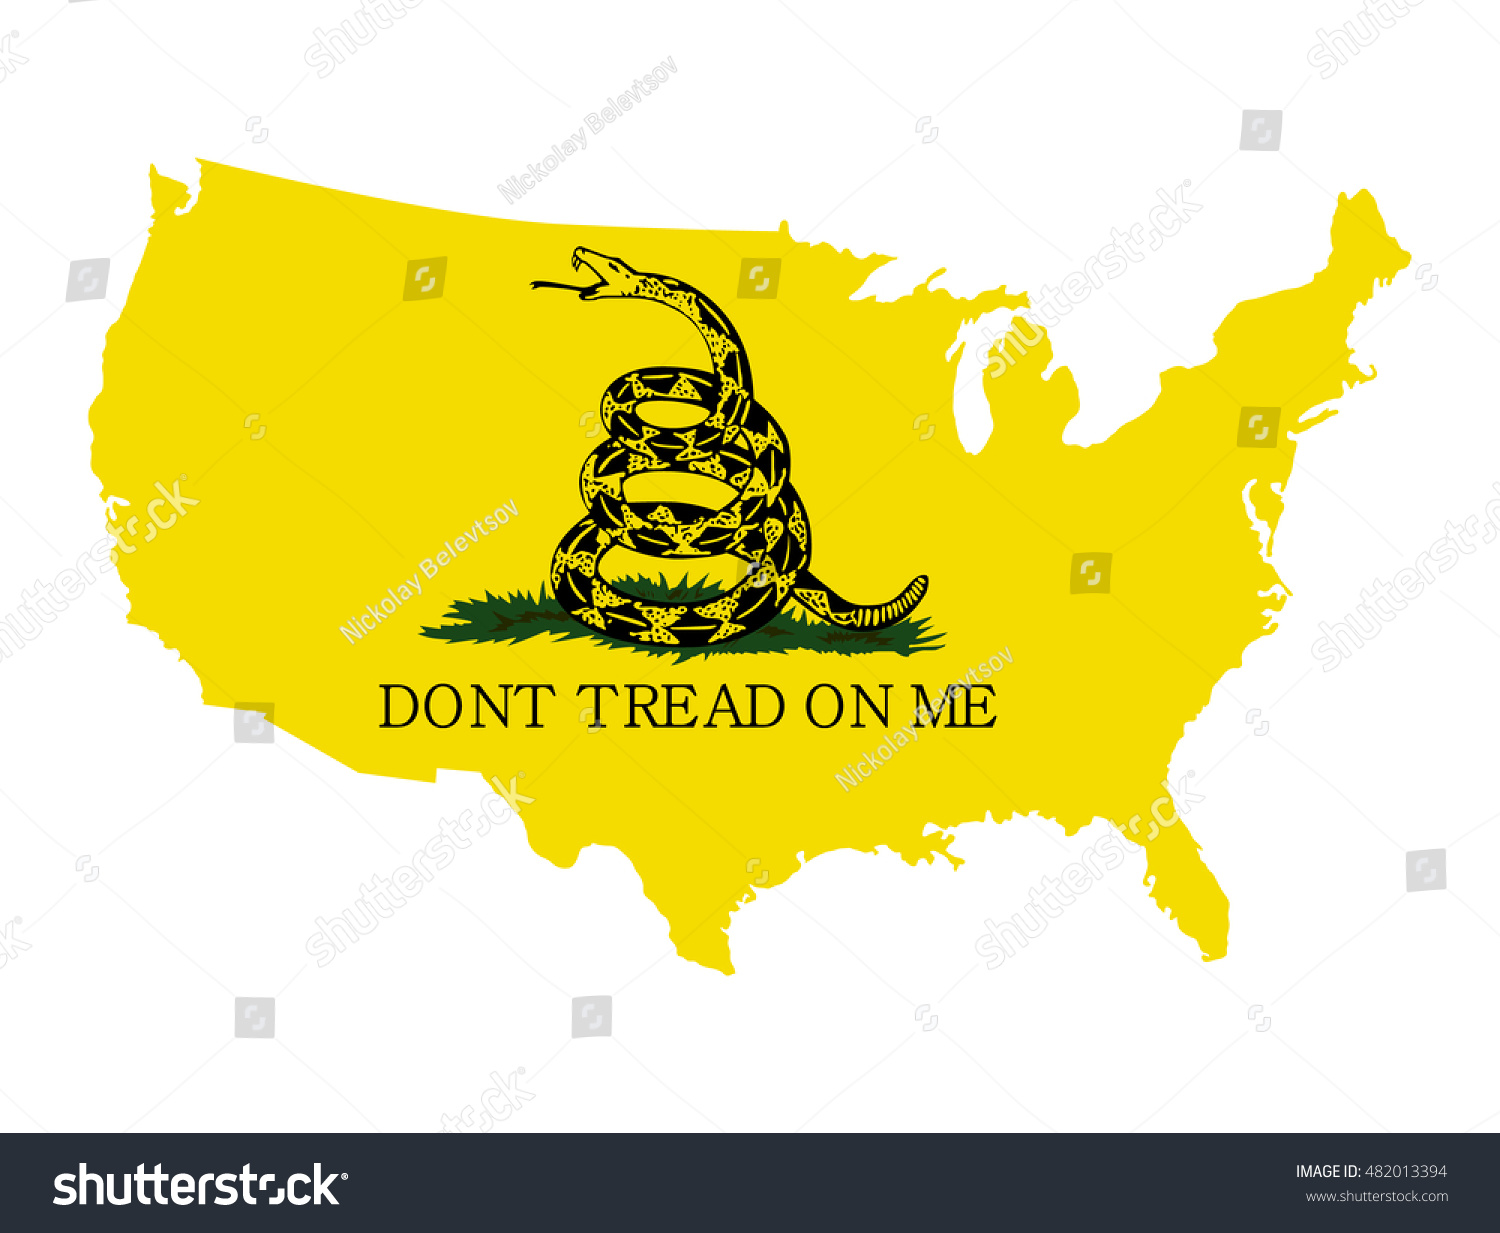 Vector Map Of The Usa With A Rattlesnake With The Gadsden Flag And The Inscription Don